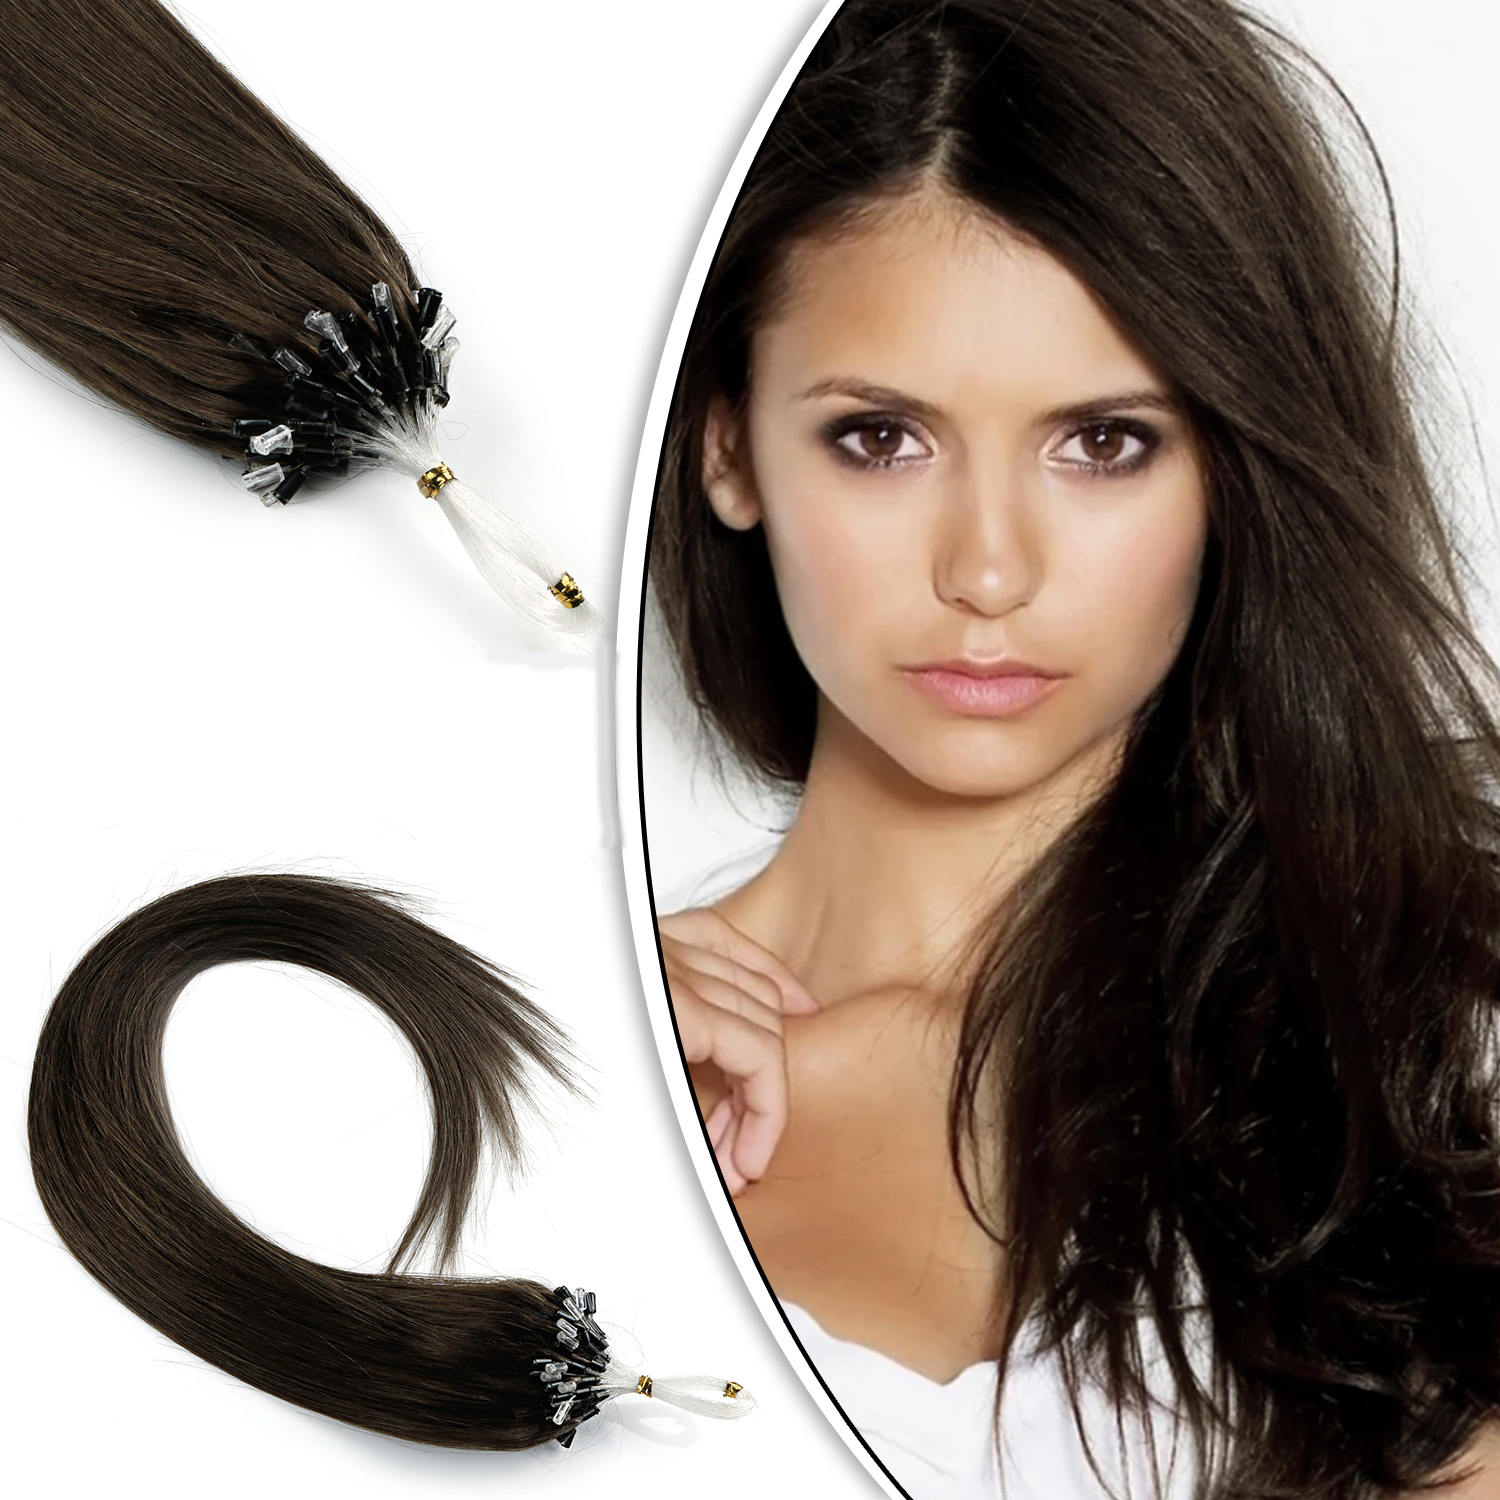 AW 16'' 20'' 24'' Micro Loop Human Hair Extensions Straight  Machine Made Remy Micro Bead Hair Extensions 1g/s